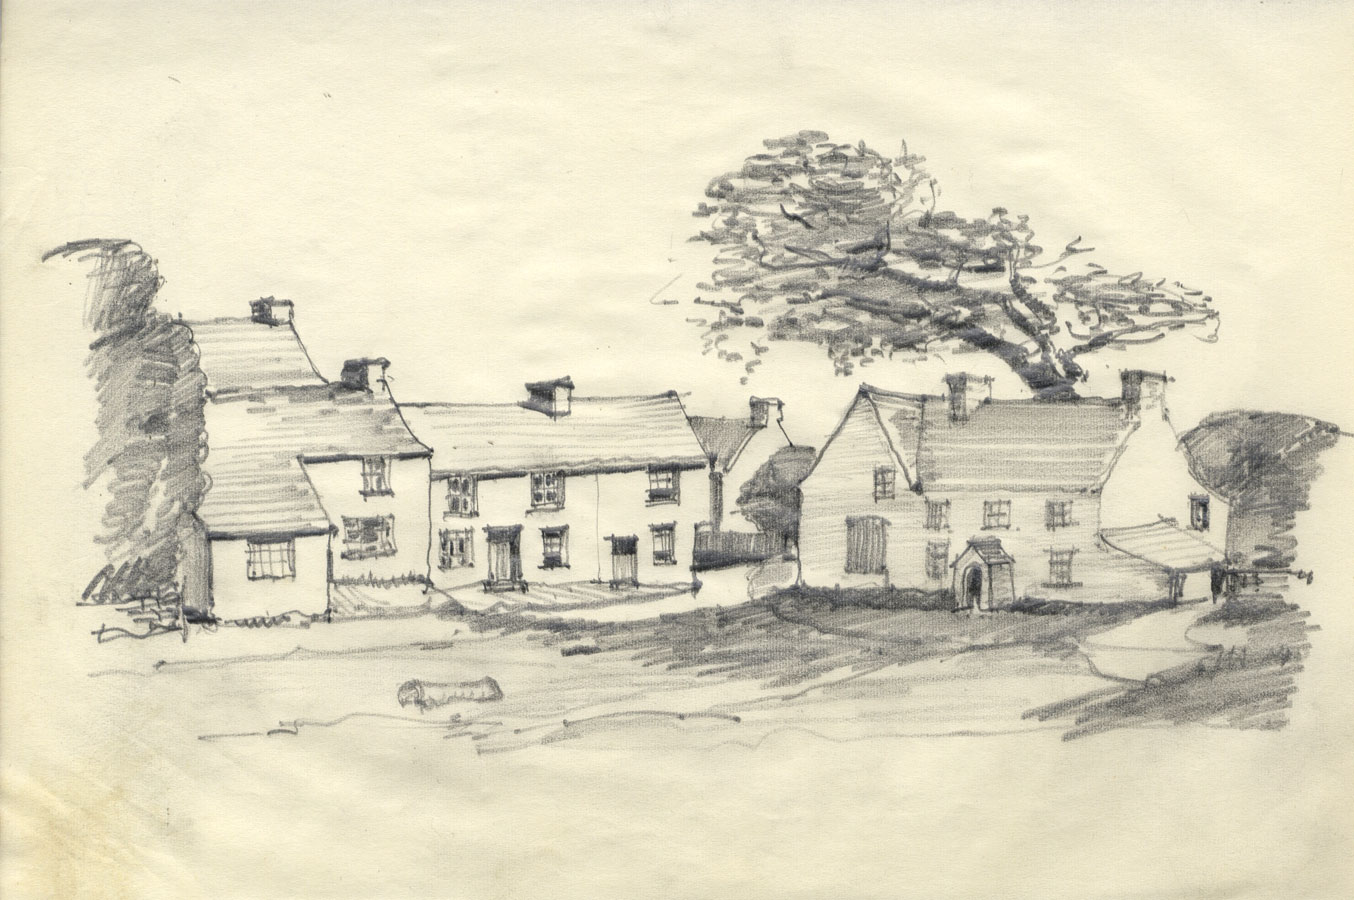 Frank S. Bowden - Early 20th Century Graphite Drawing, Houses